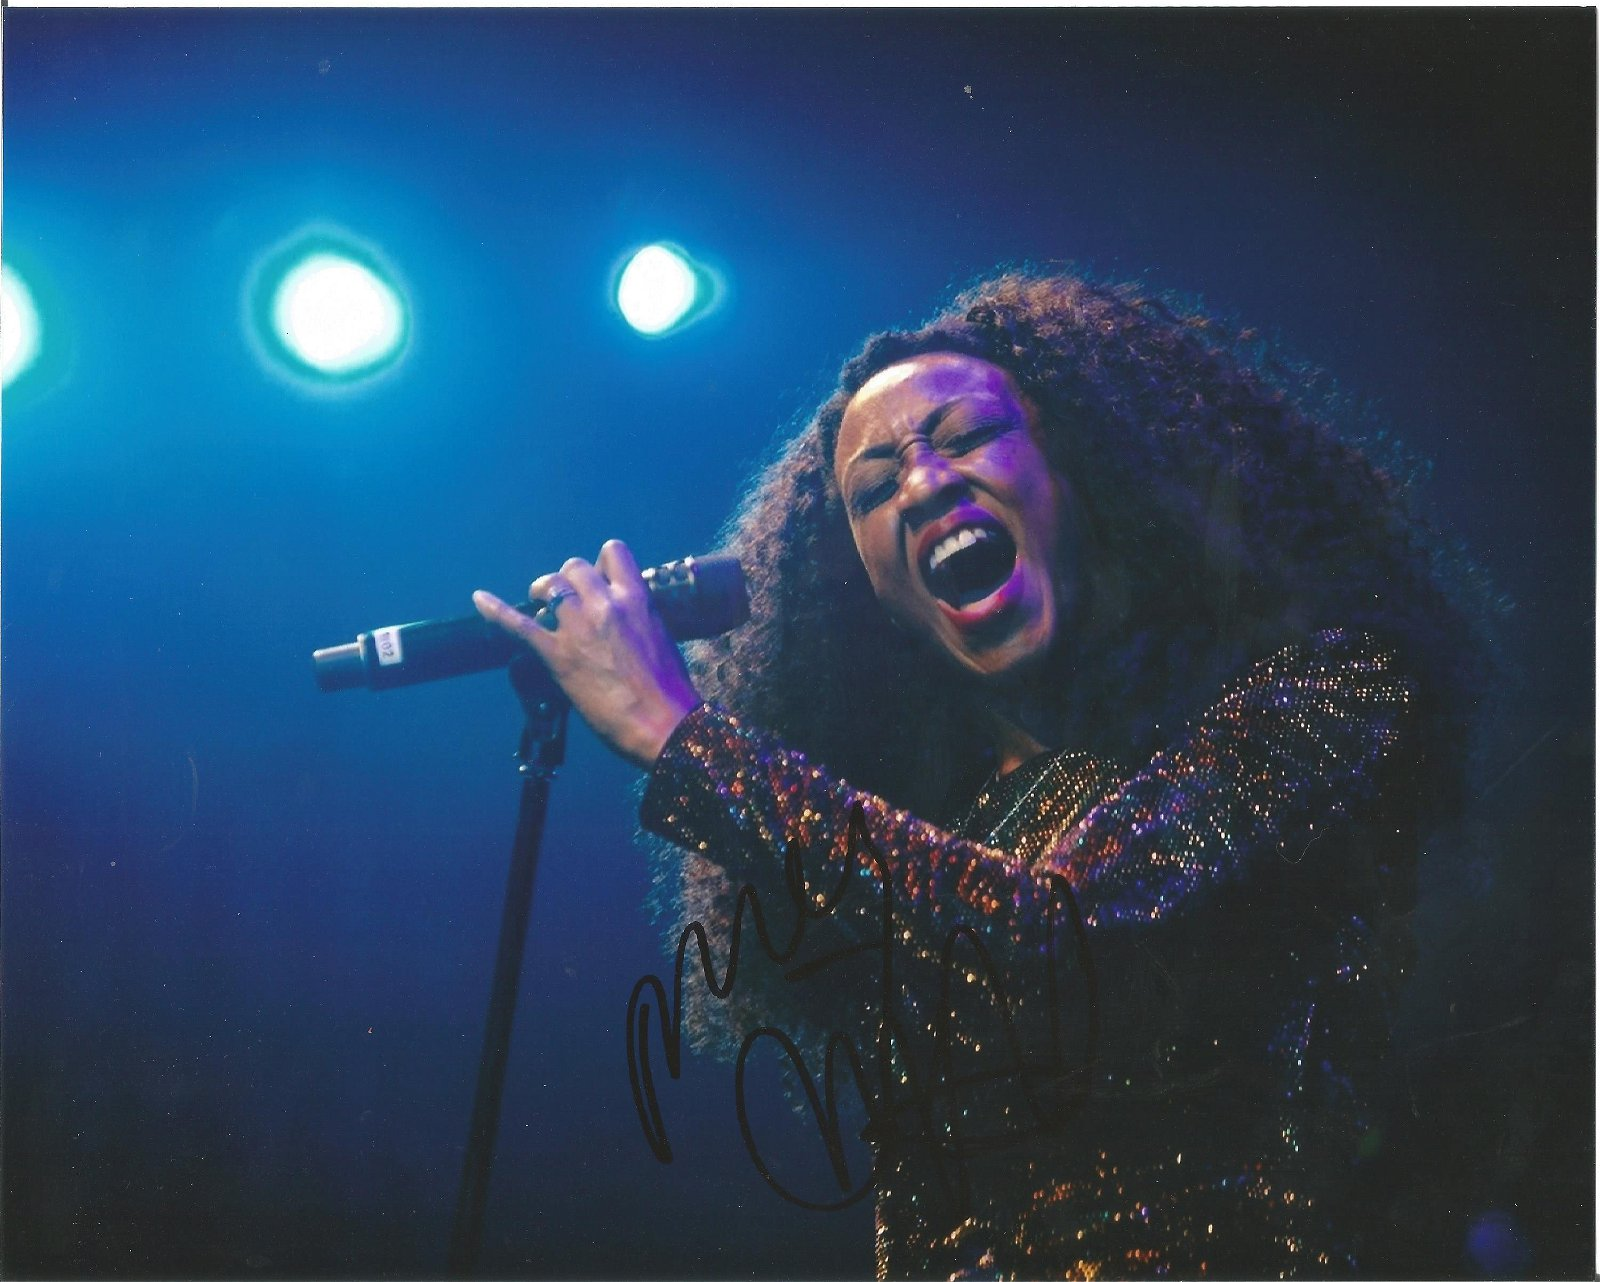 Beverley Knight Singer Signed 8x10 Photo . Good